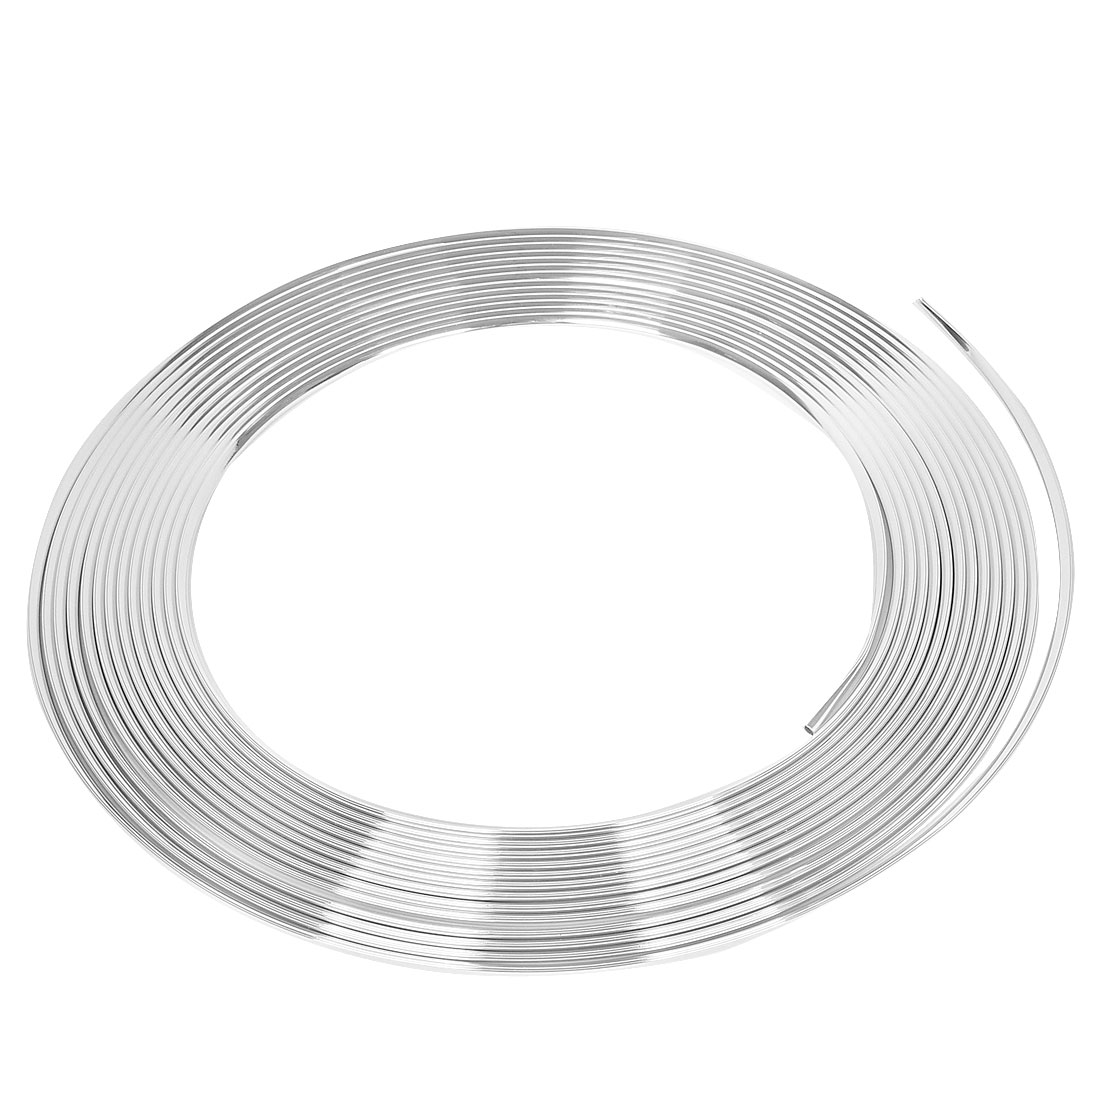 Car Decoration 15M x 6mm Silver Tone Plastic Moulding Trim Strip Adhesive Tape